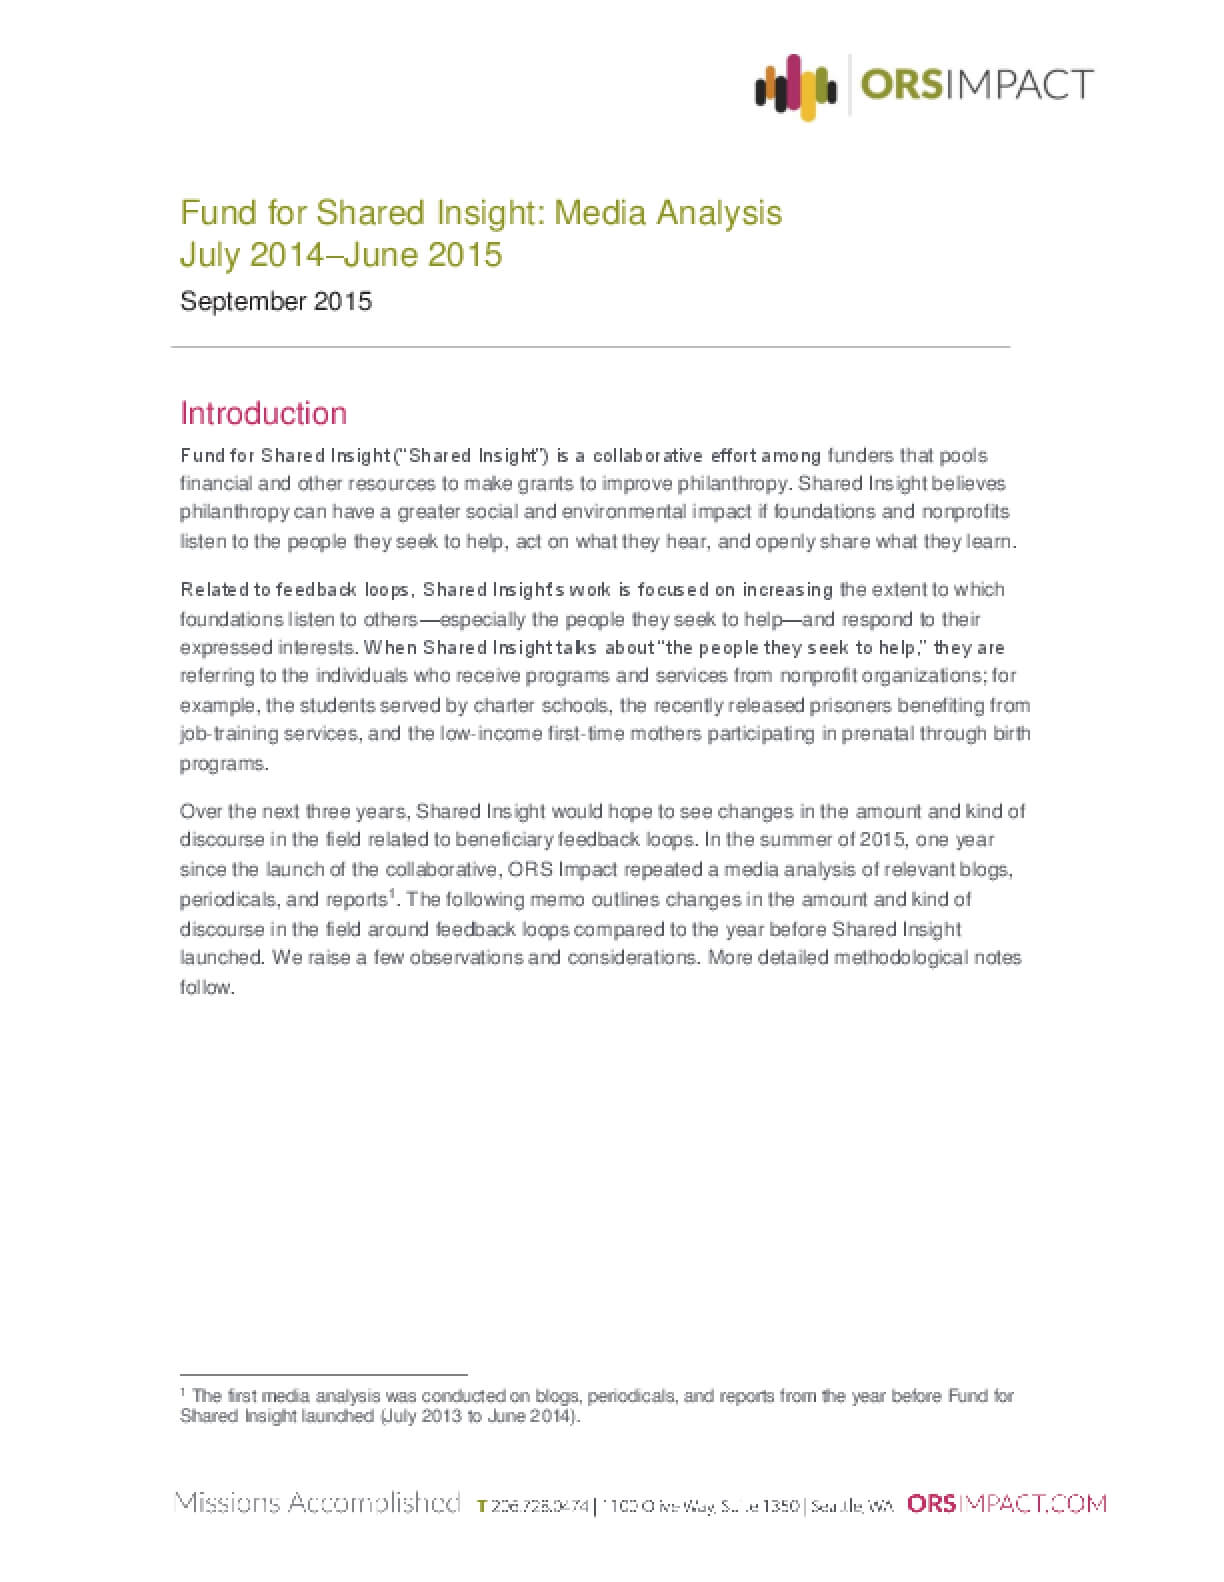 Fund for Shared Insight: Media Analysis